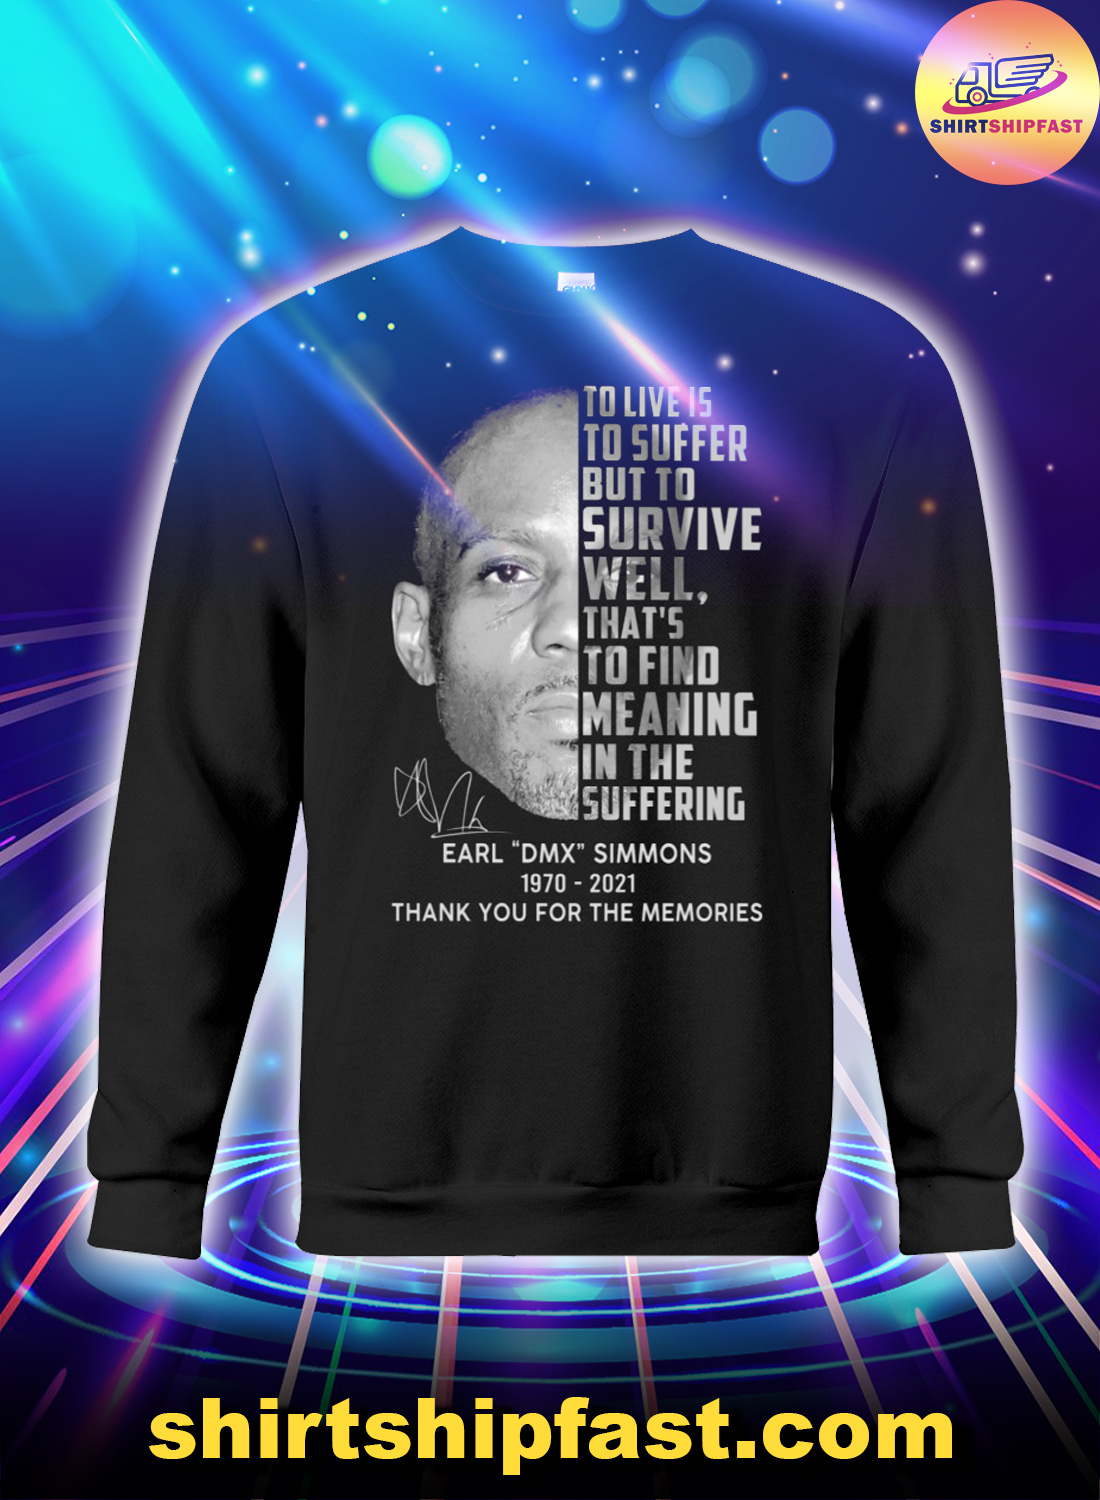 Earl DMX Simmons To live is to suffer but to survive well sweatshirt